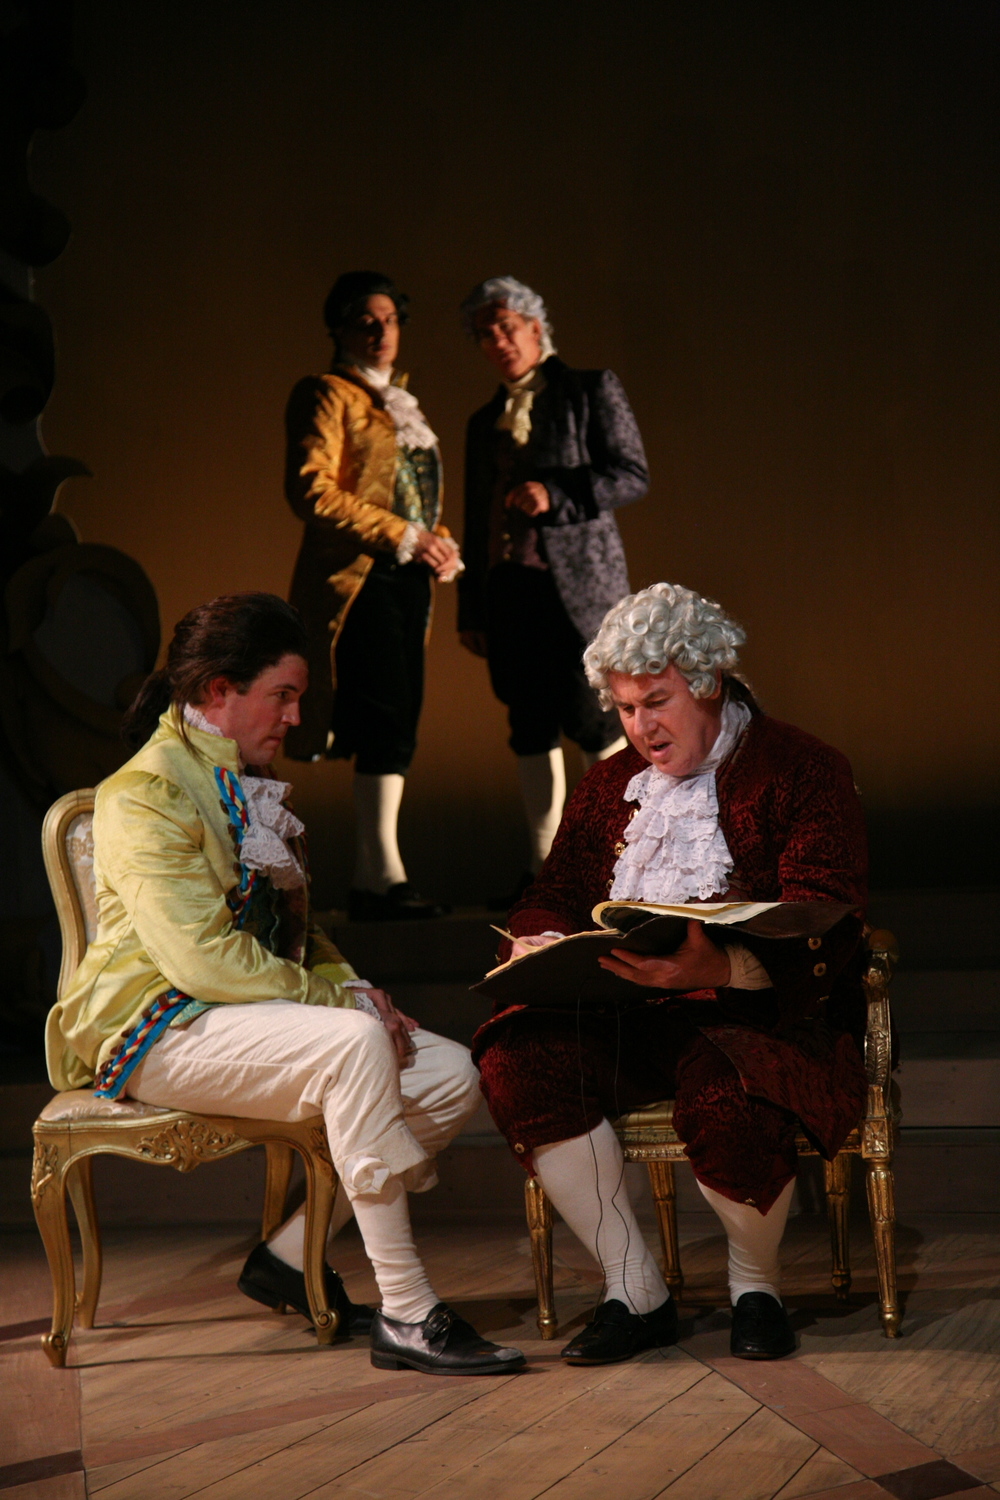 Amadeus - Mozart (Jordan Coughtry), Count Orsini-Rosenberg (Colin McPhillamy). Background -  Salieri (Robert Cuccioli), Von Strack (John Little).JPG